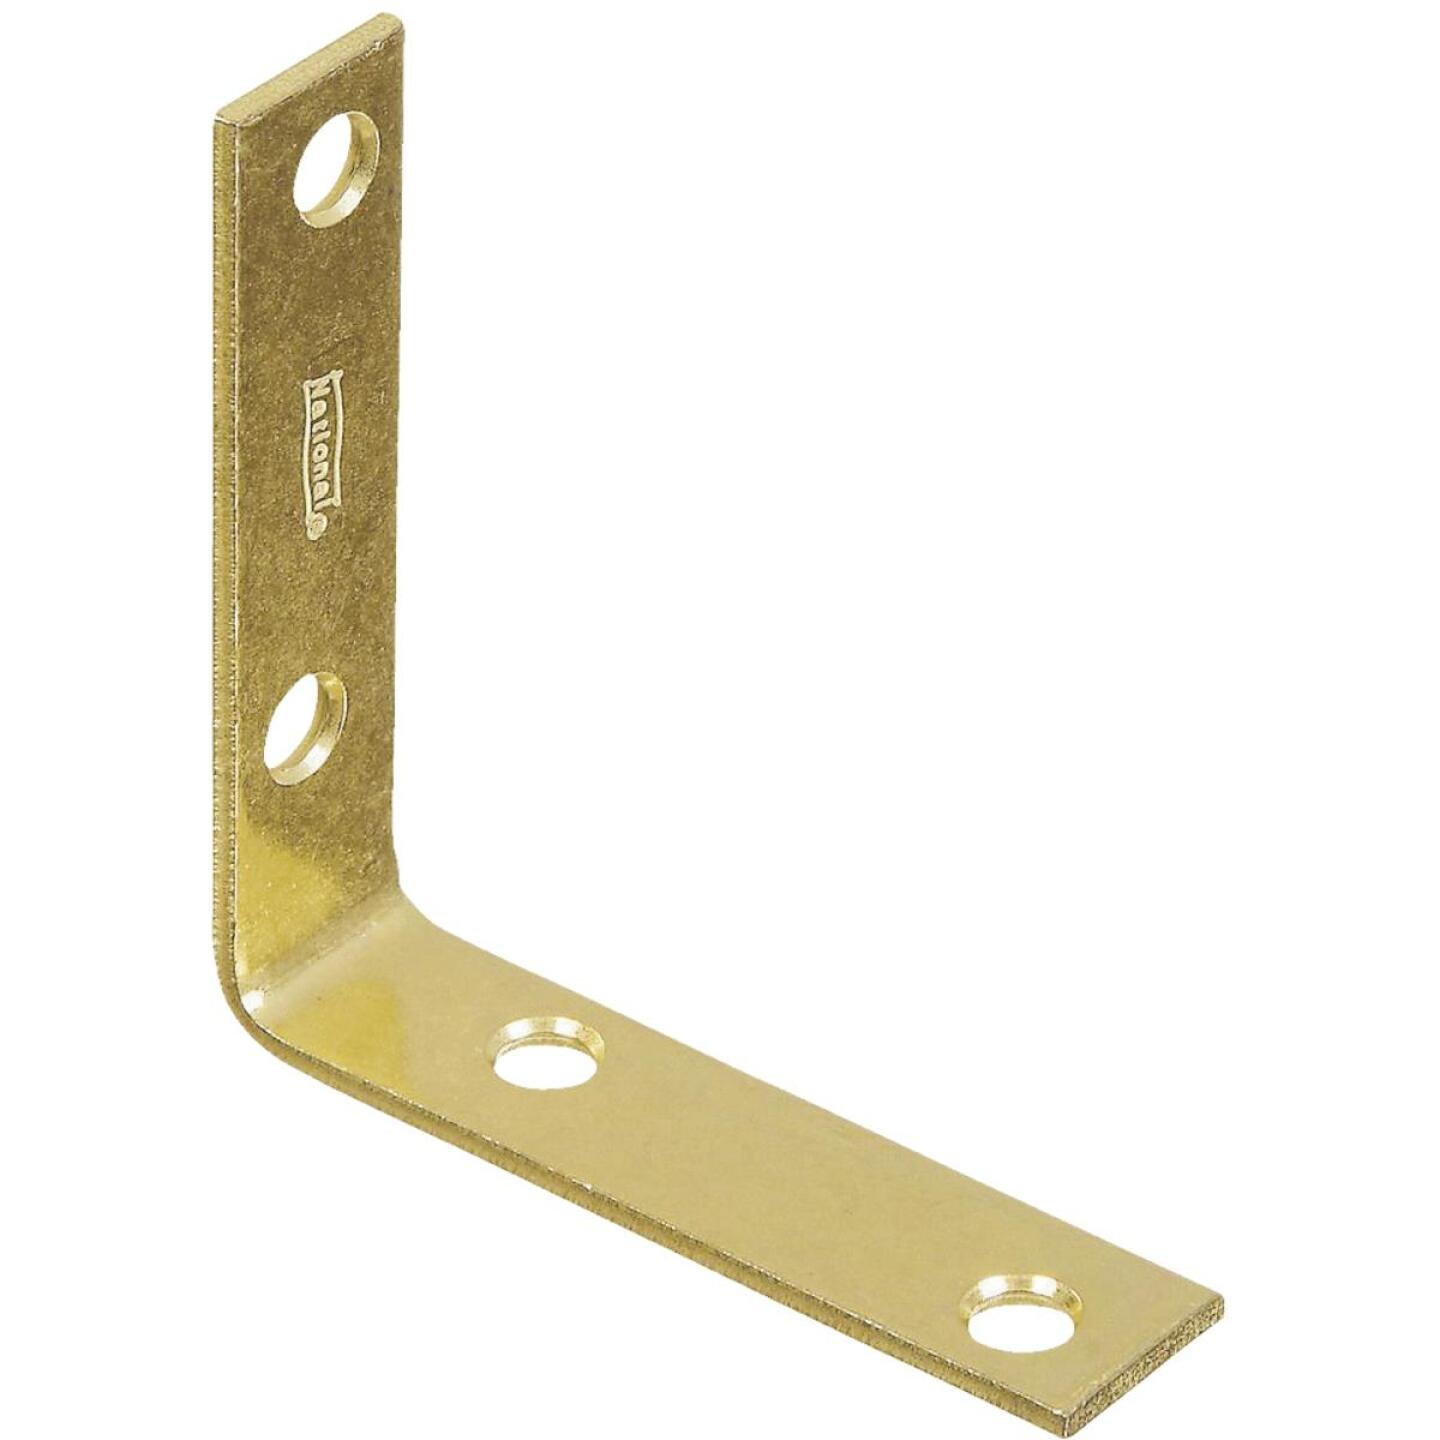 National Catalog V115 3 In. x 3/4 In. Brass Steel Corner Brace (4-Count) Image 1